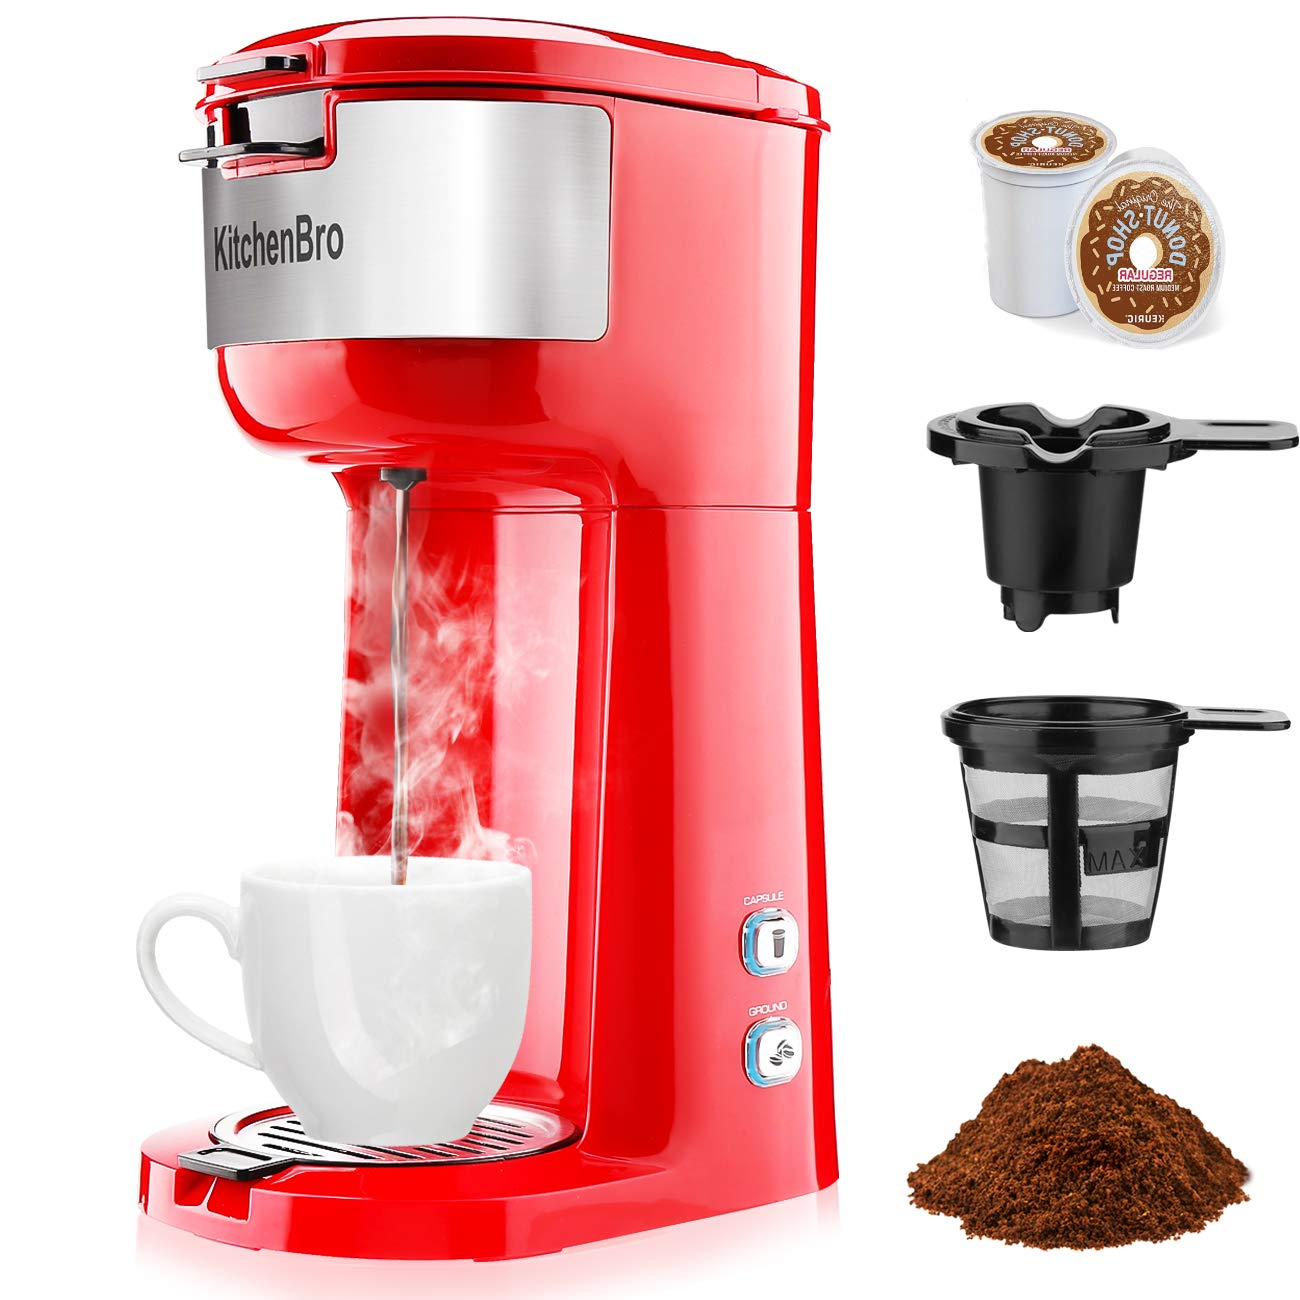 KitchenBro Single Serve Coffee Maker-Compatible for K-Cup Pod Capsule & Coffee Ground,Rapid Brewing Coffee Machine,Compact Size,6-14oz Water Reservoir,Red by KitchenBro